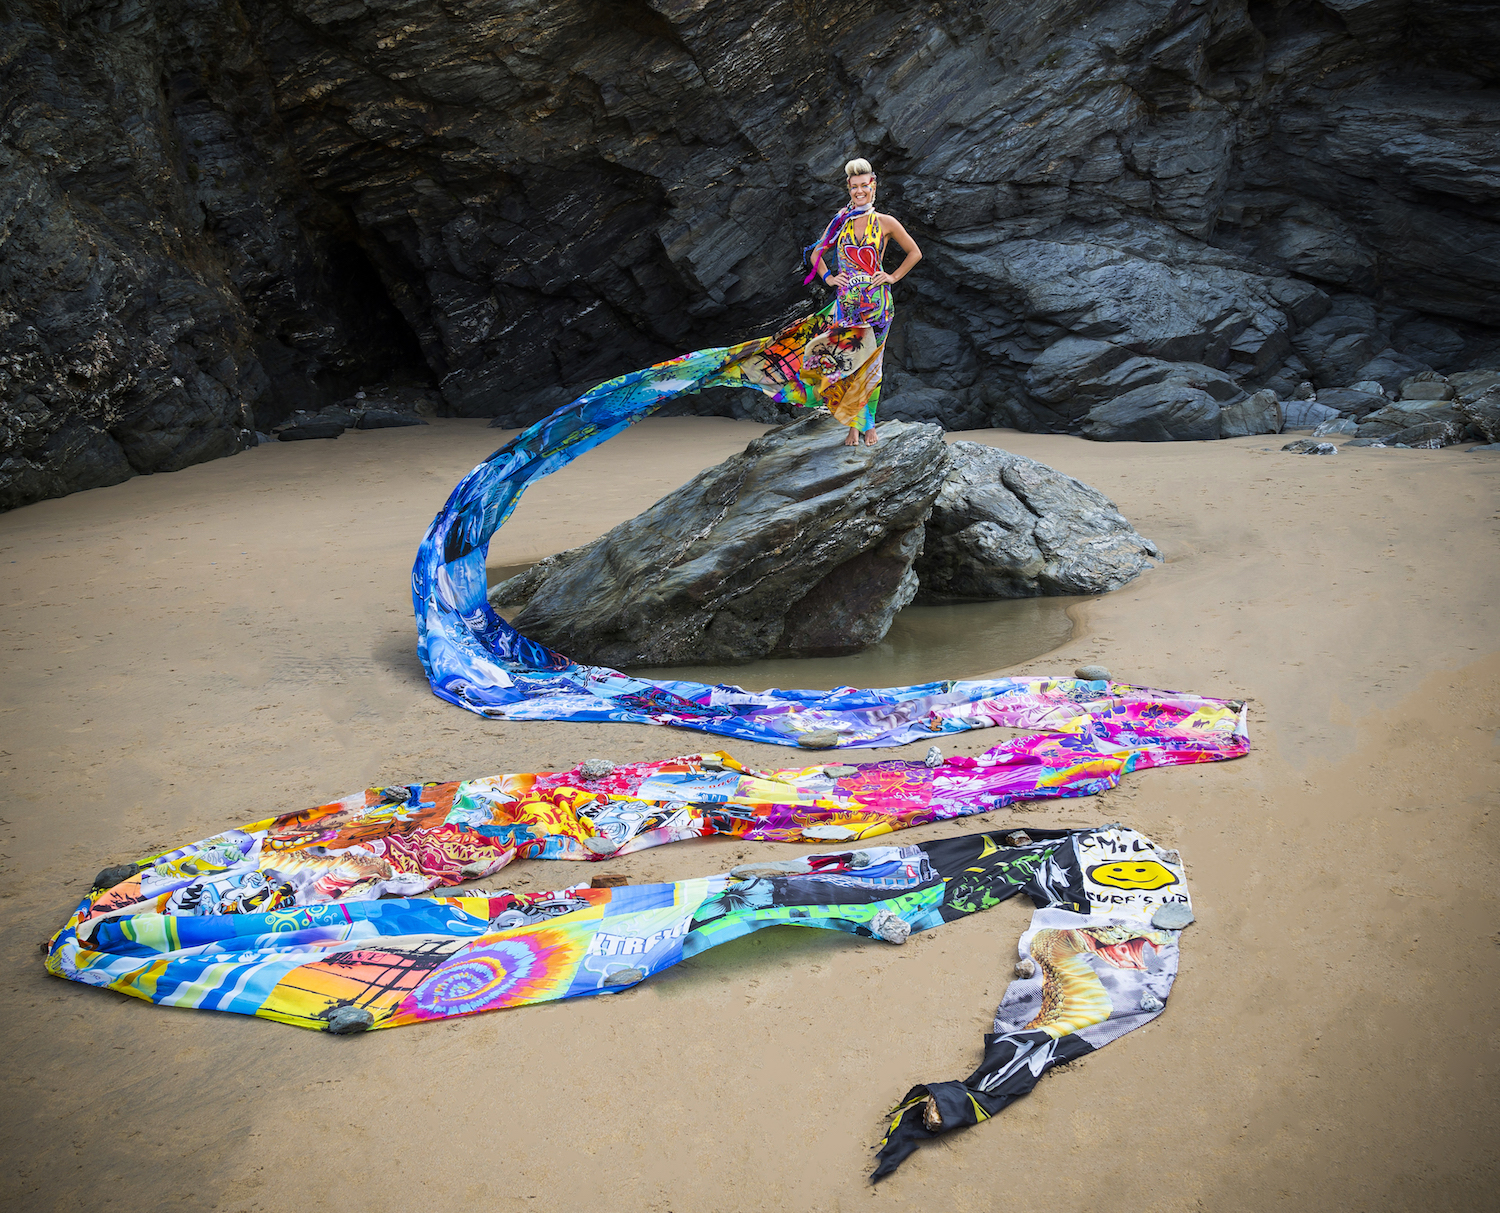 Stemming the tide: the Wave of Waste dress